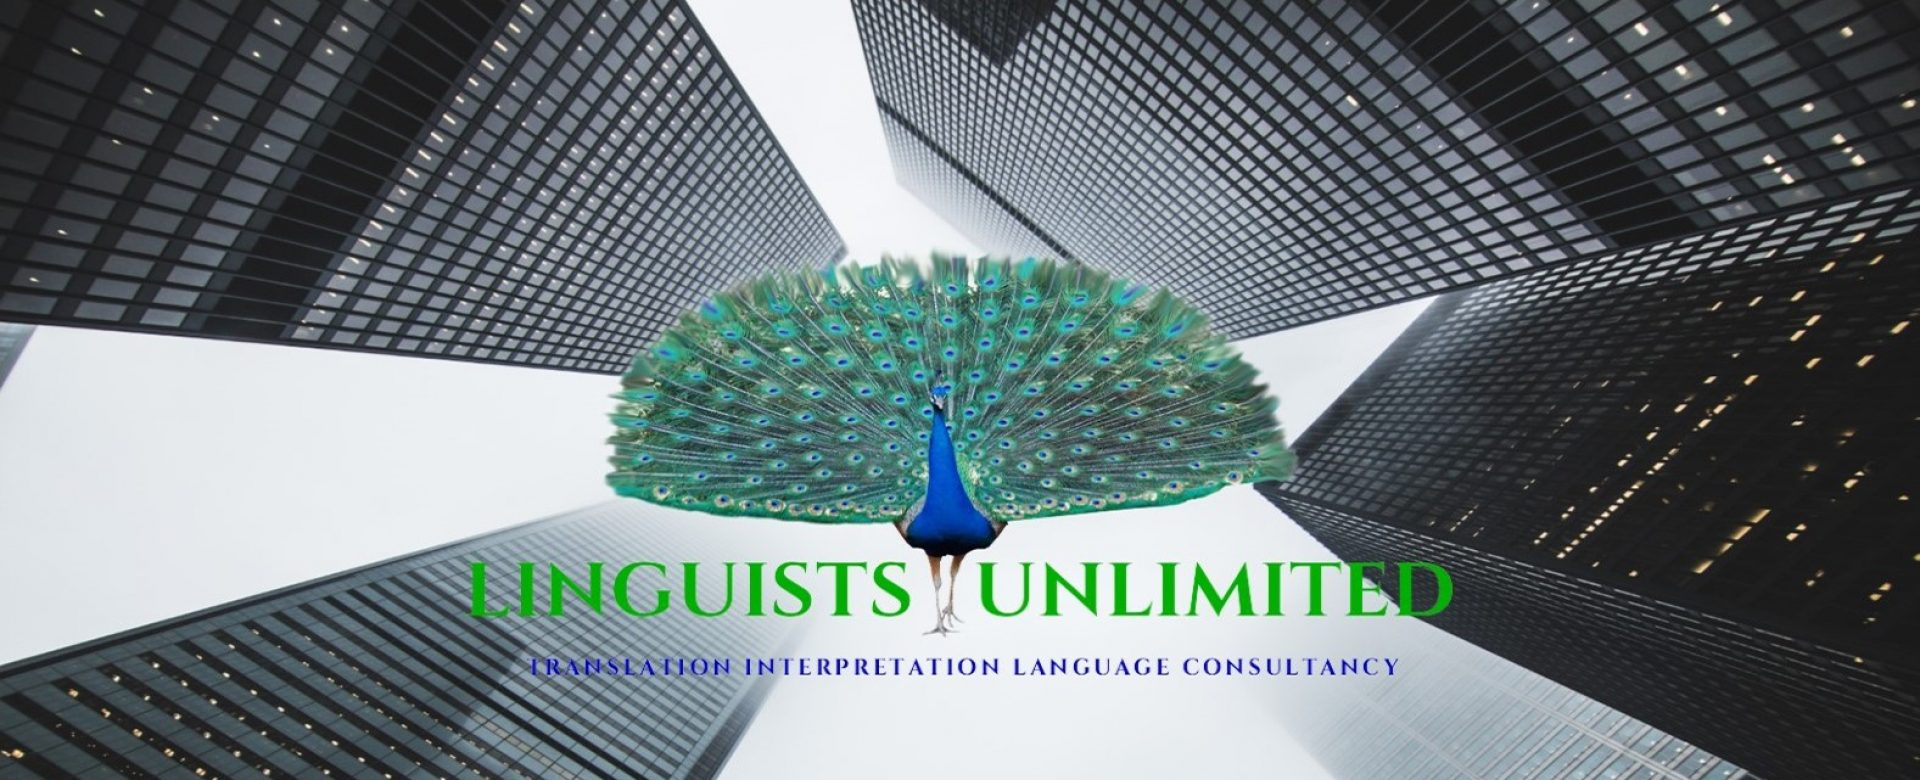 Linguists Unlimited